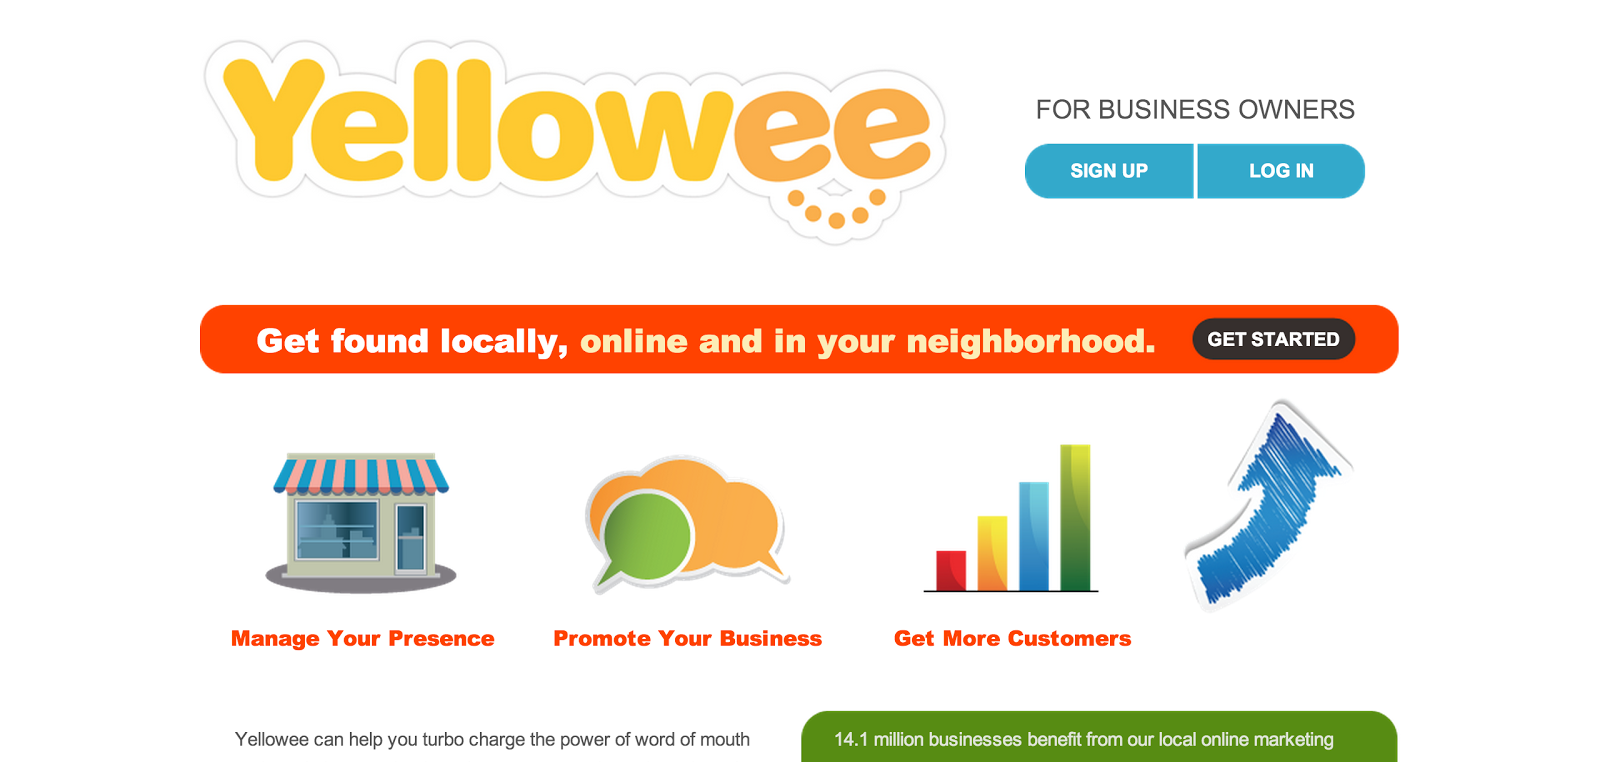 Yellowee for Business Owners homepage